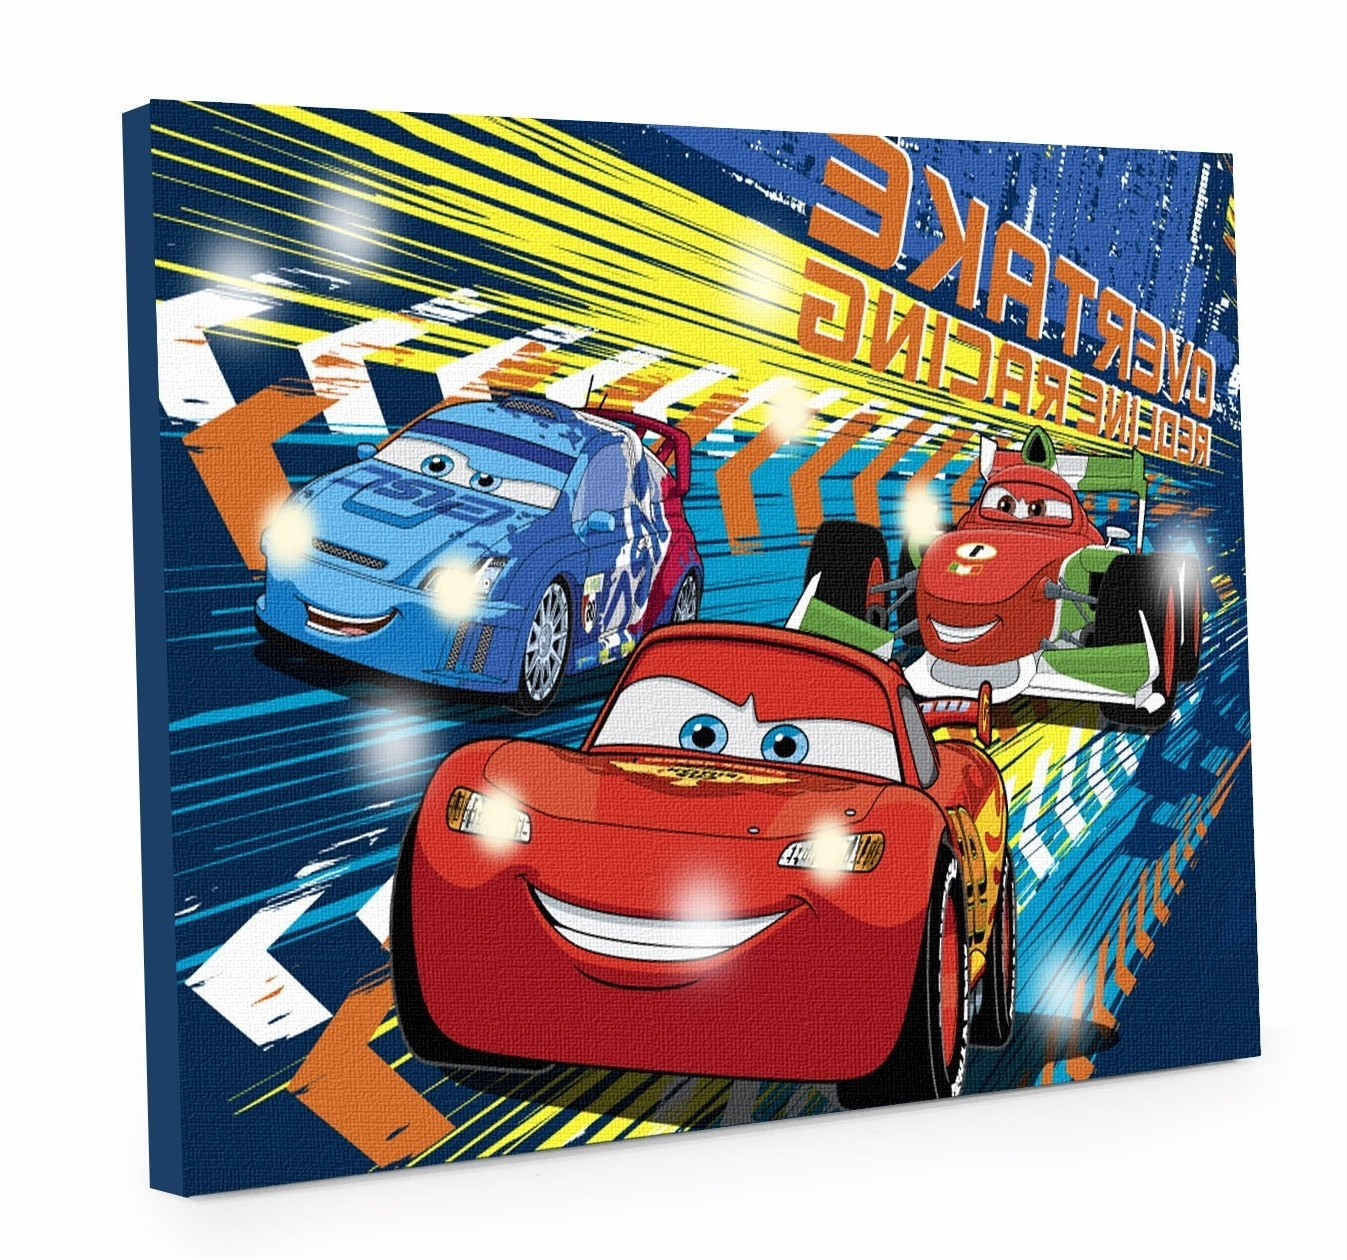 Widely Used Amazon: Disney Cars 3 Led Canvas Wall Art, 15.75 Inch X (View 14 of 15)